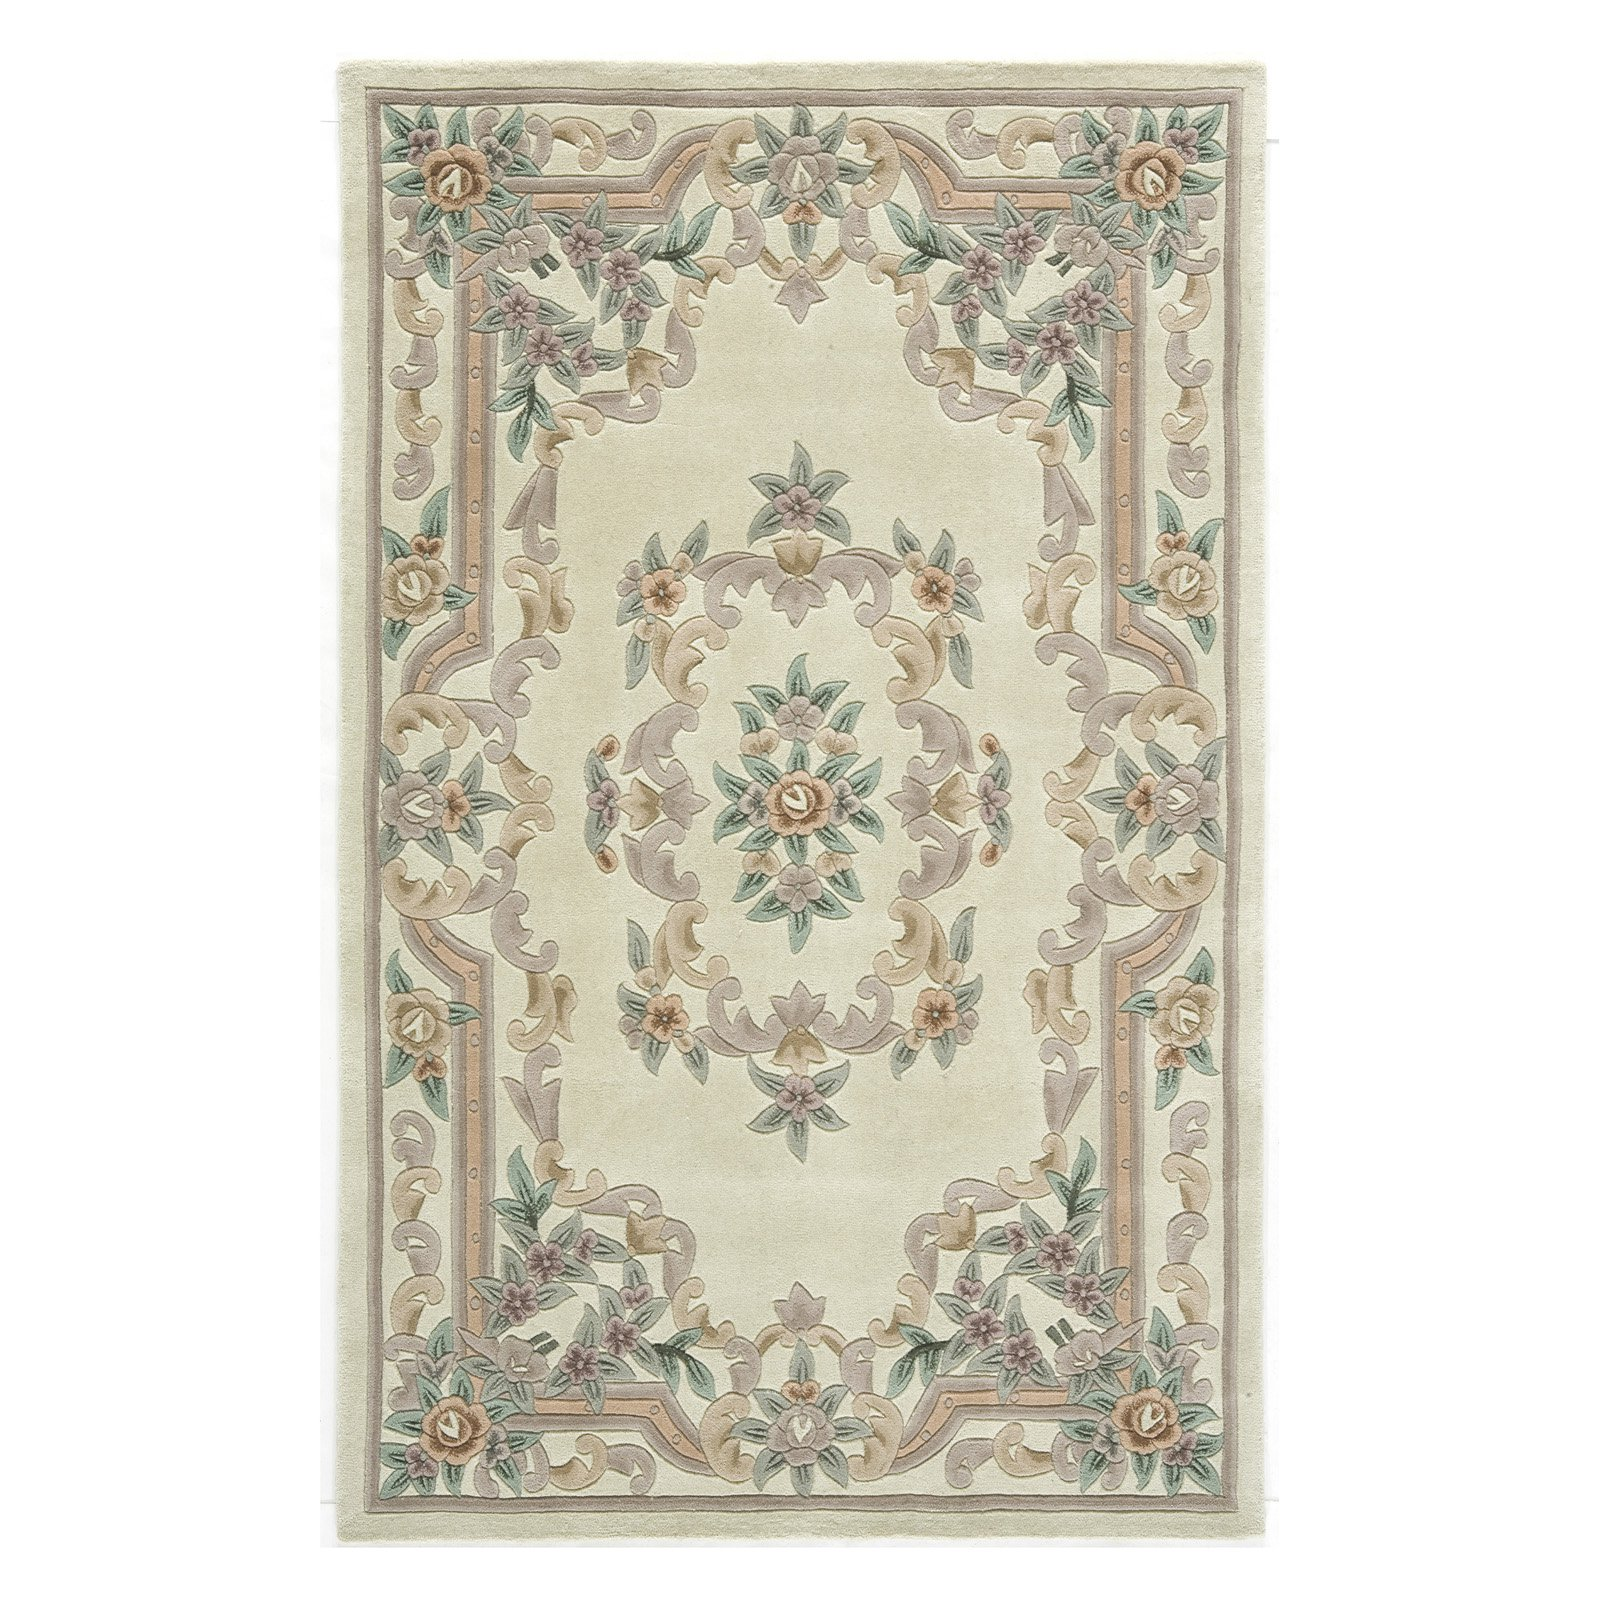 Rugs America New Aubusson Tufted Wool Rug